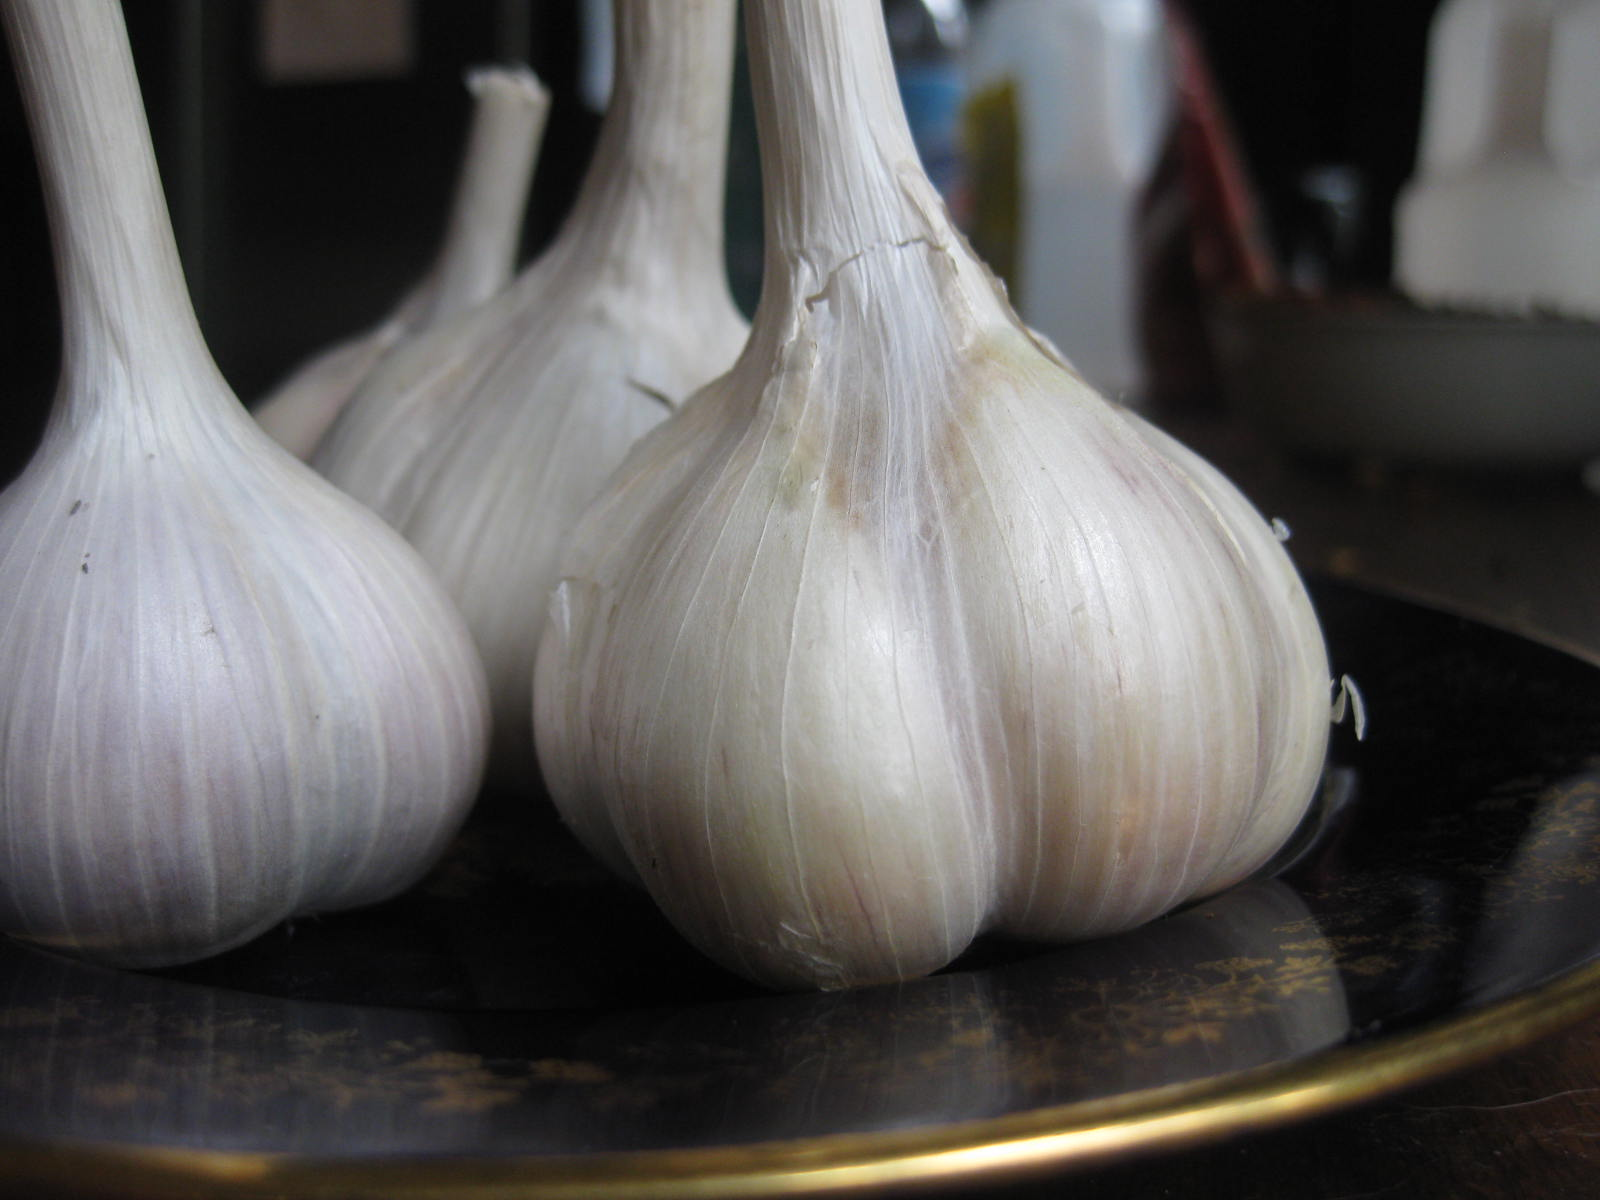 My Garlic Sowing And Growing Guide